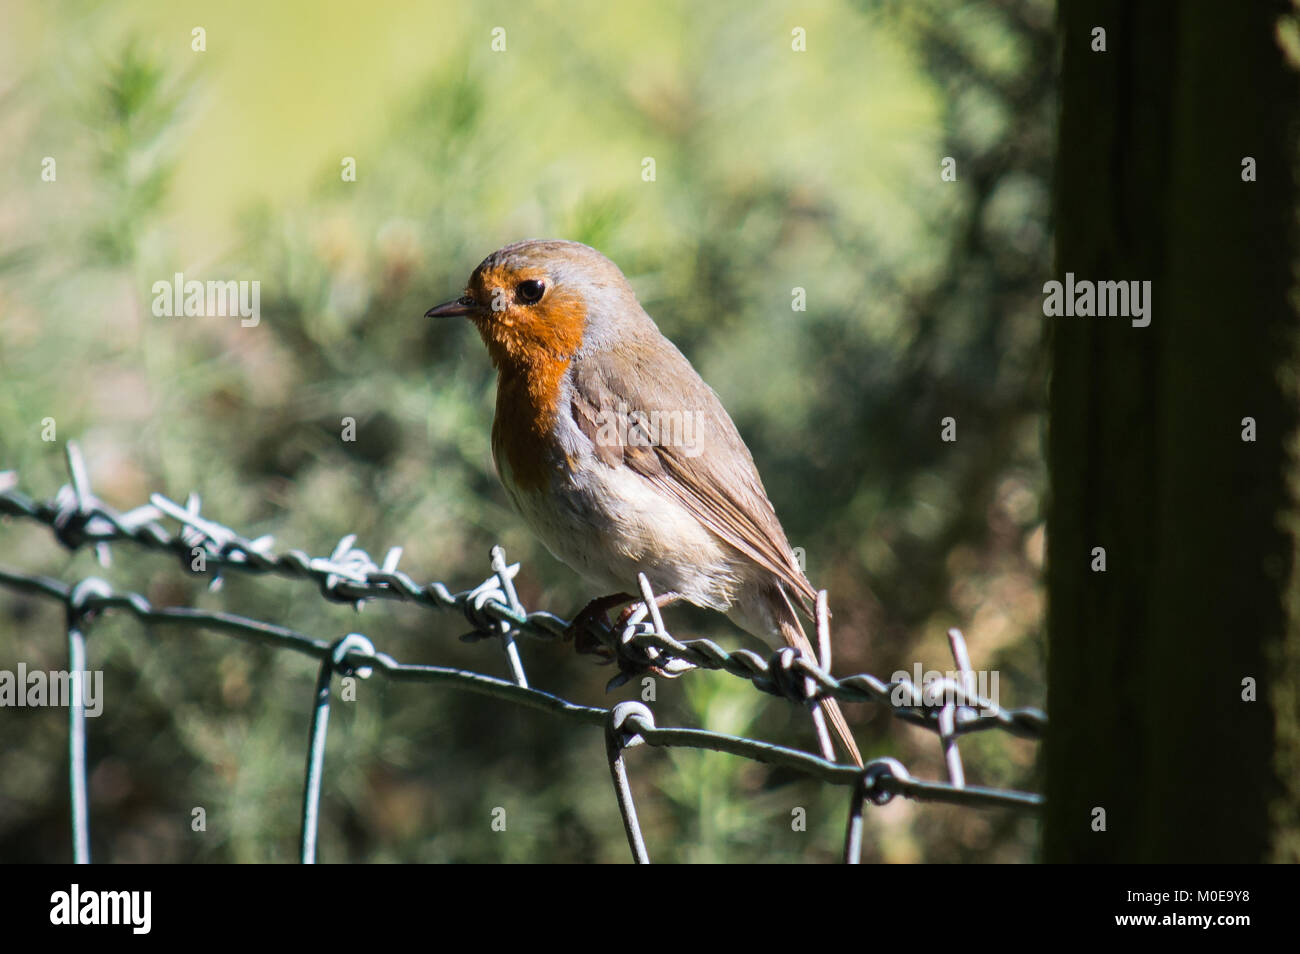 A robin on a wire fence - Stock Image